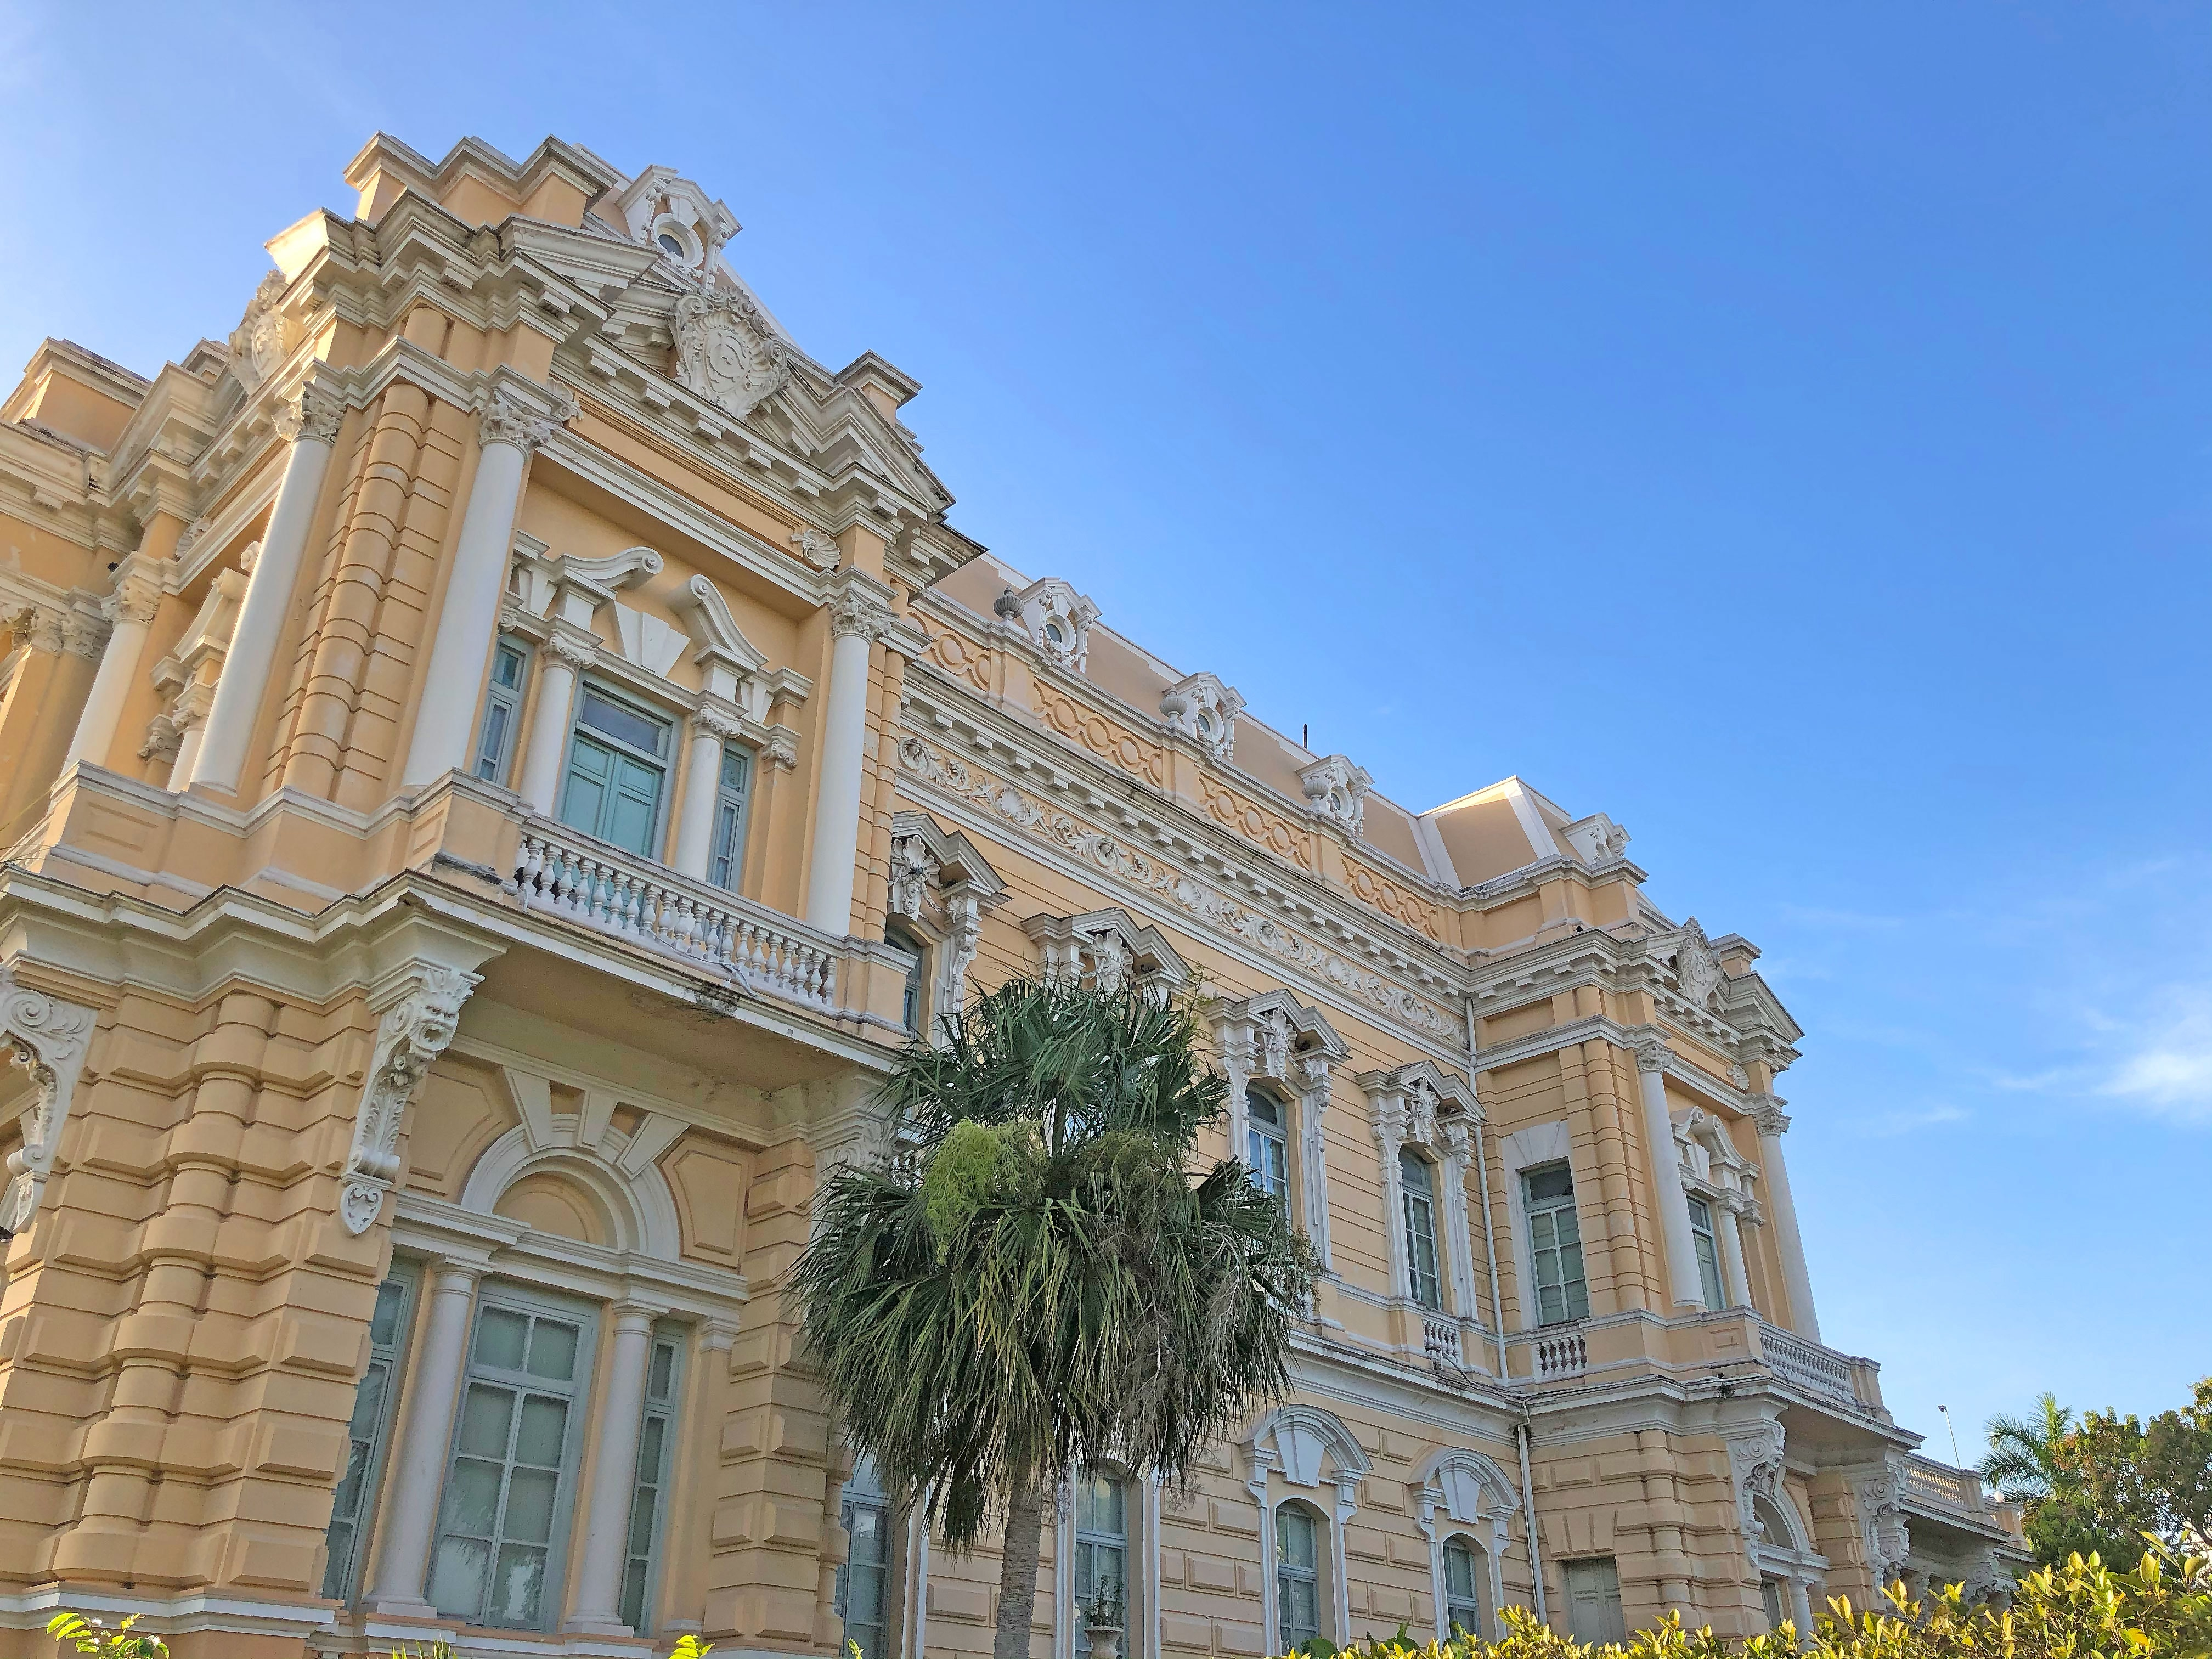 The Yucatan, Mexico- Best places to visit in Merida and its environs